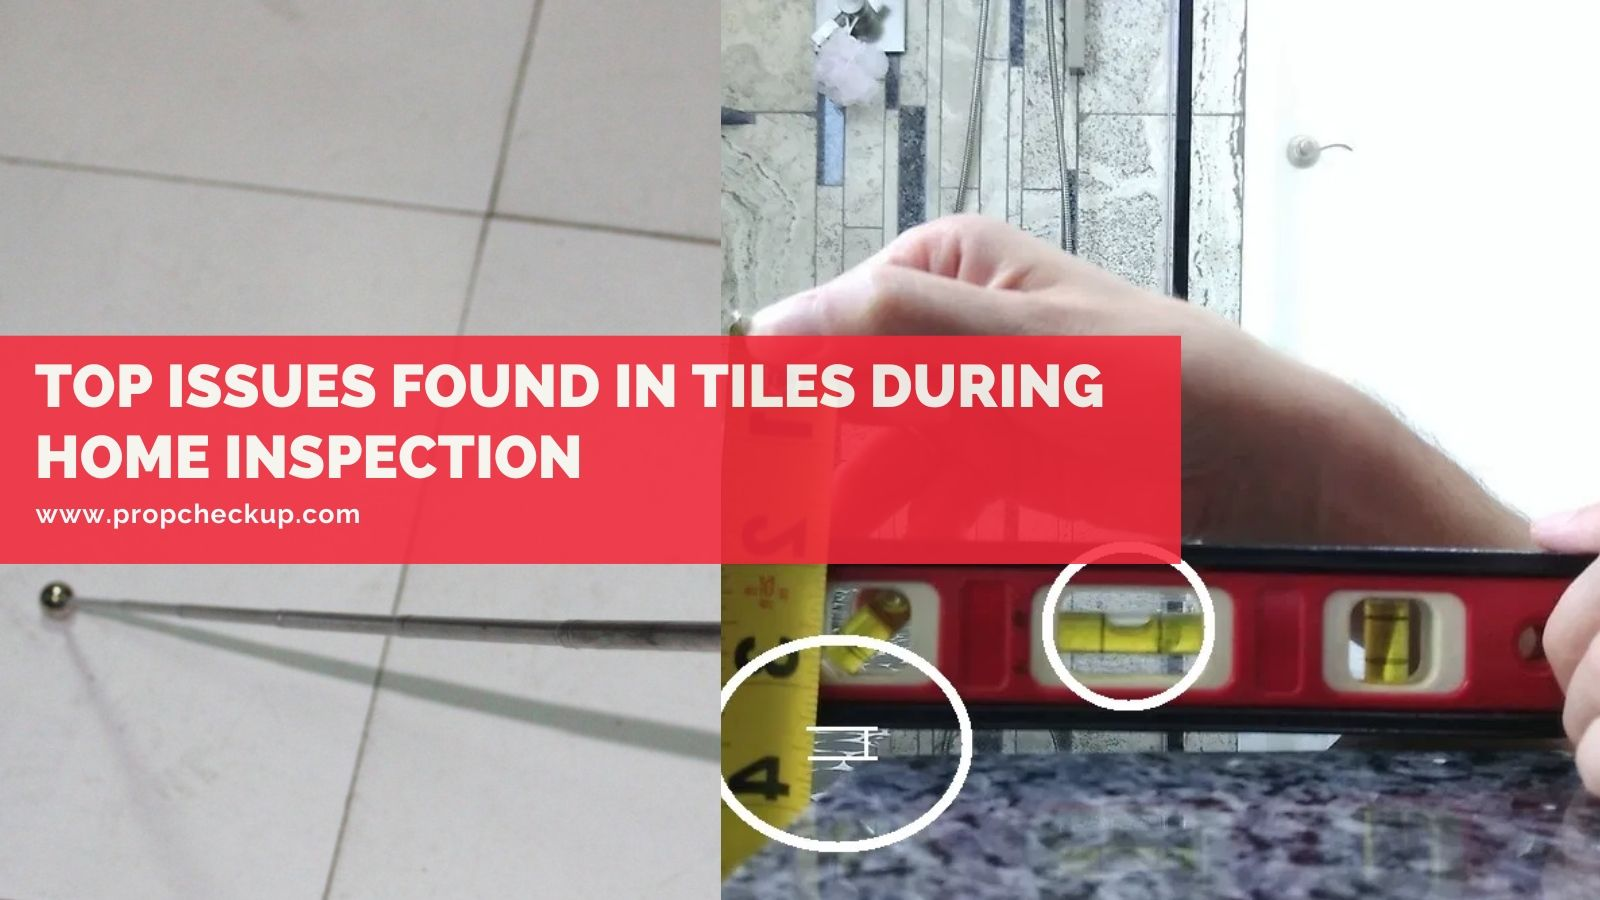 Tile Issues During Home Inspection